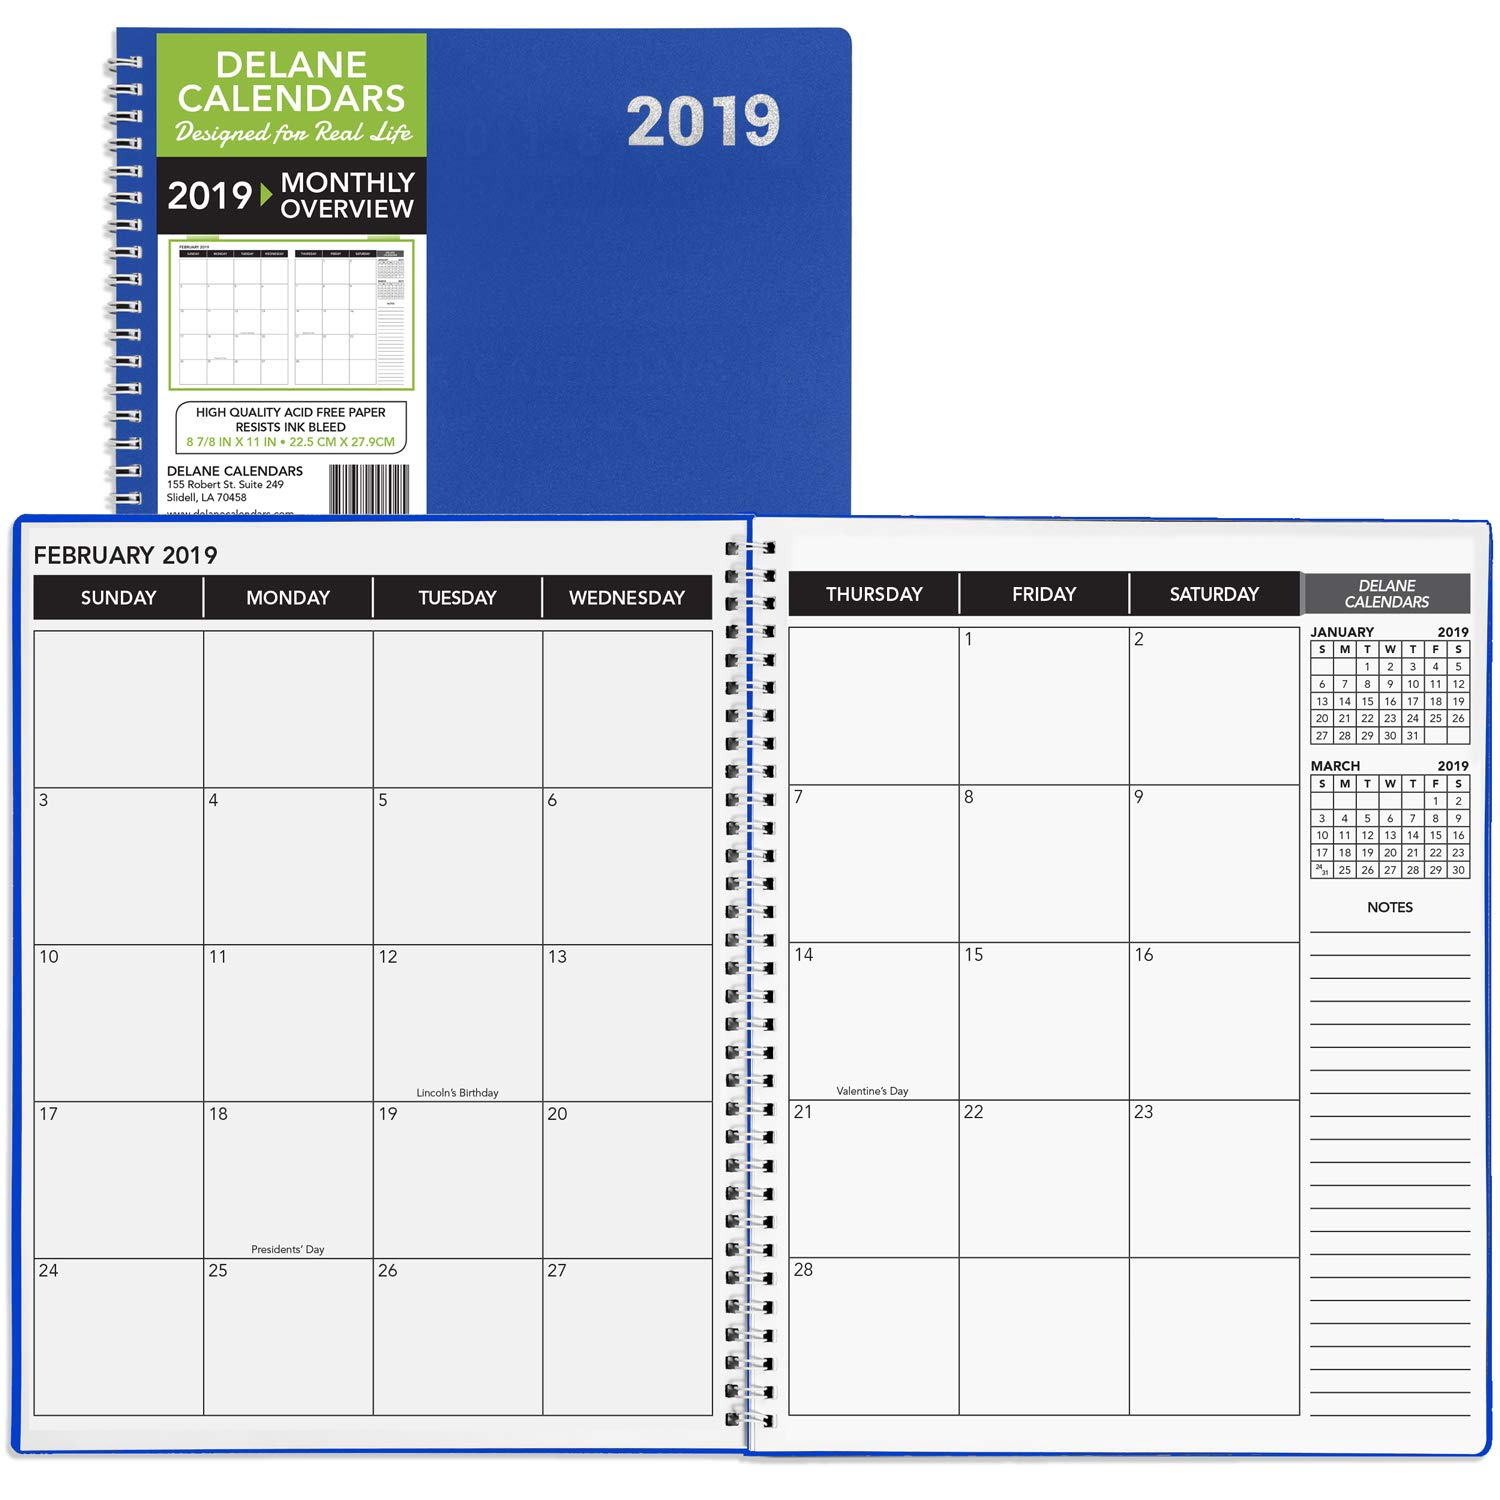 General Blue Calendar February 2019 Amazon.: Daily Monthly Planner 2019 Calendar/Appointment Book